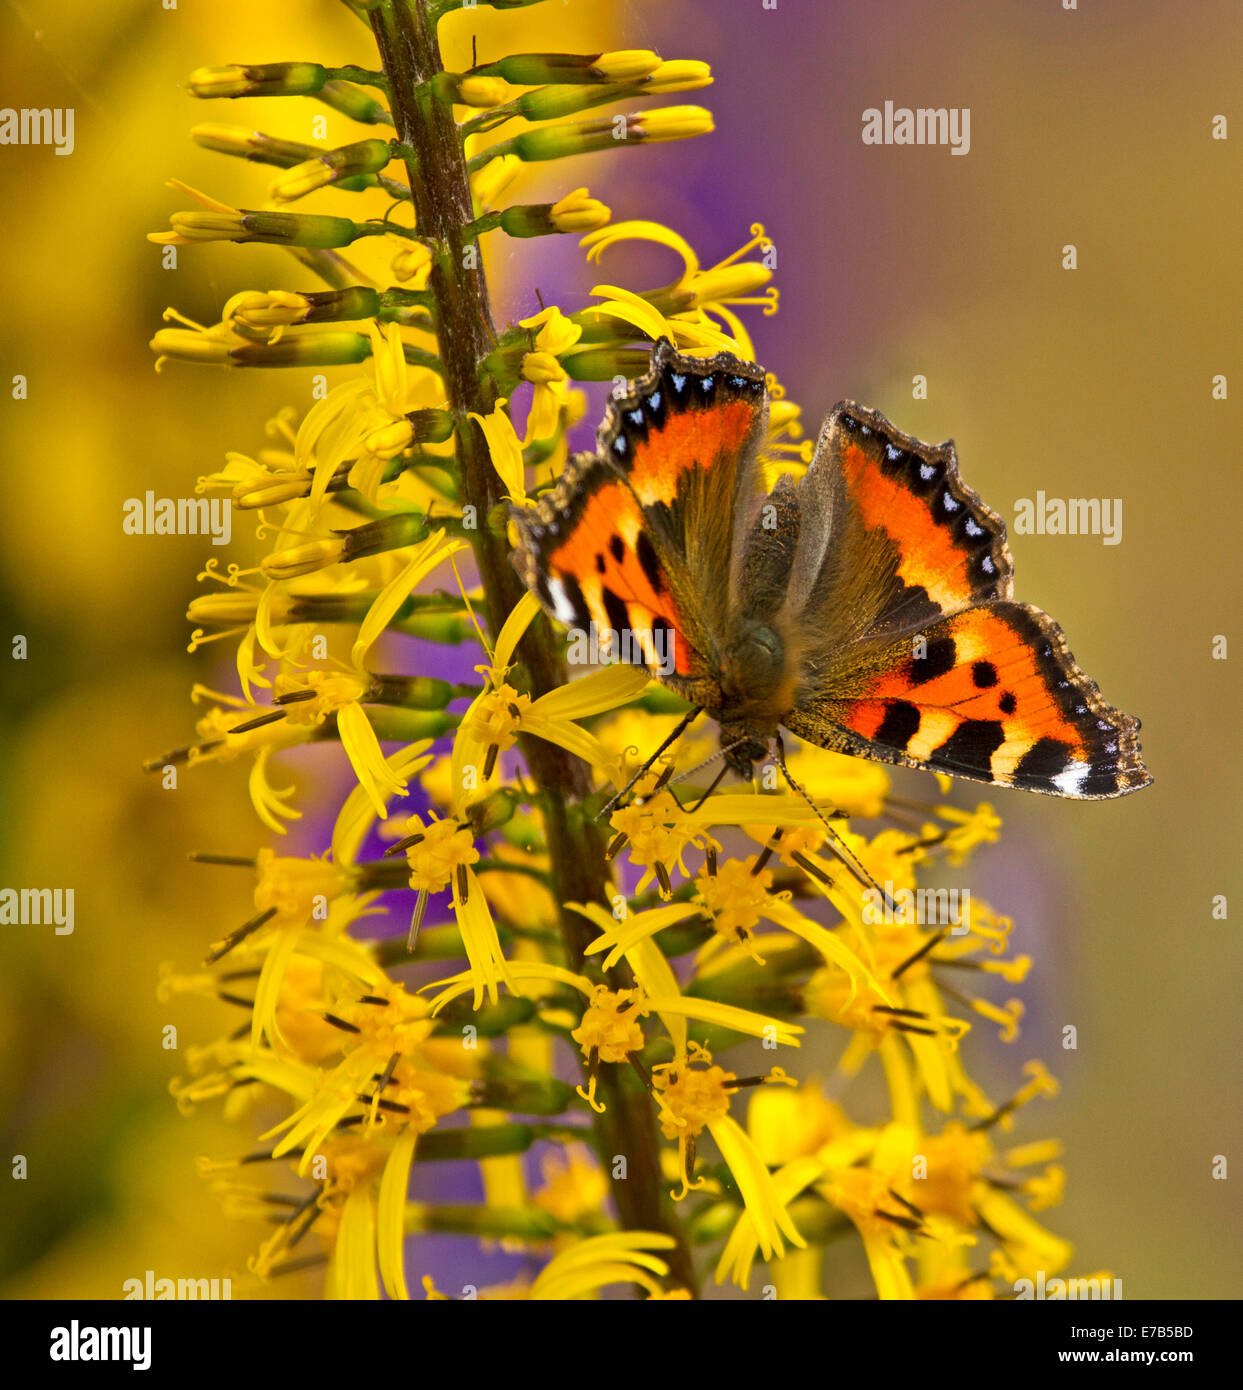 Colourful orange & black British small tortoiseshell butterfly, Aglais urticae, on yellow flowers in garden - Stock Image